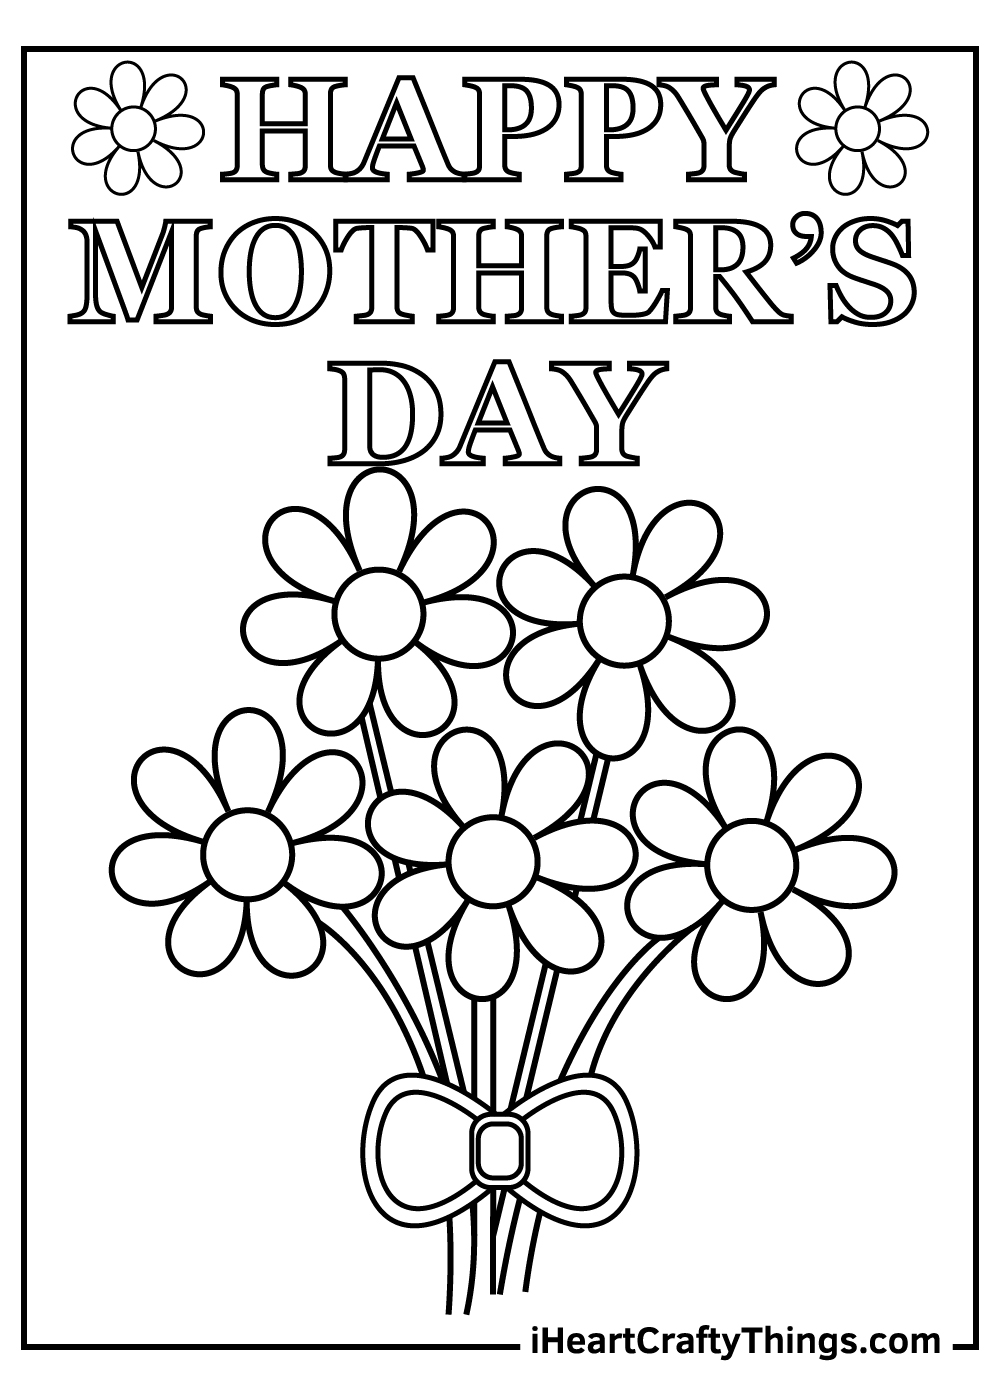 mother's day free coloring pages